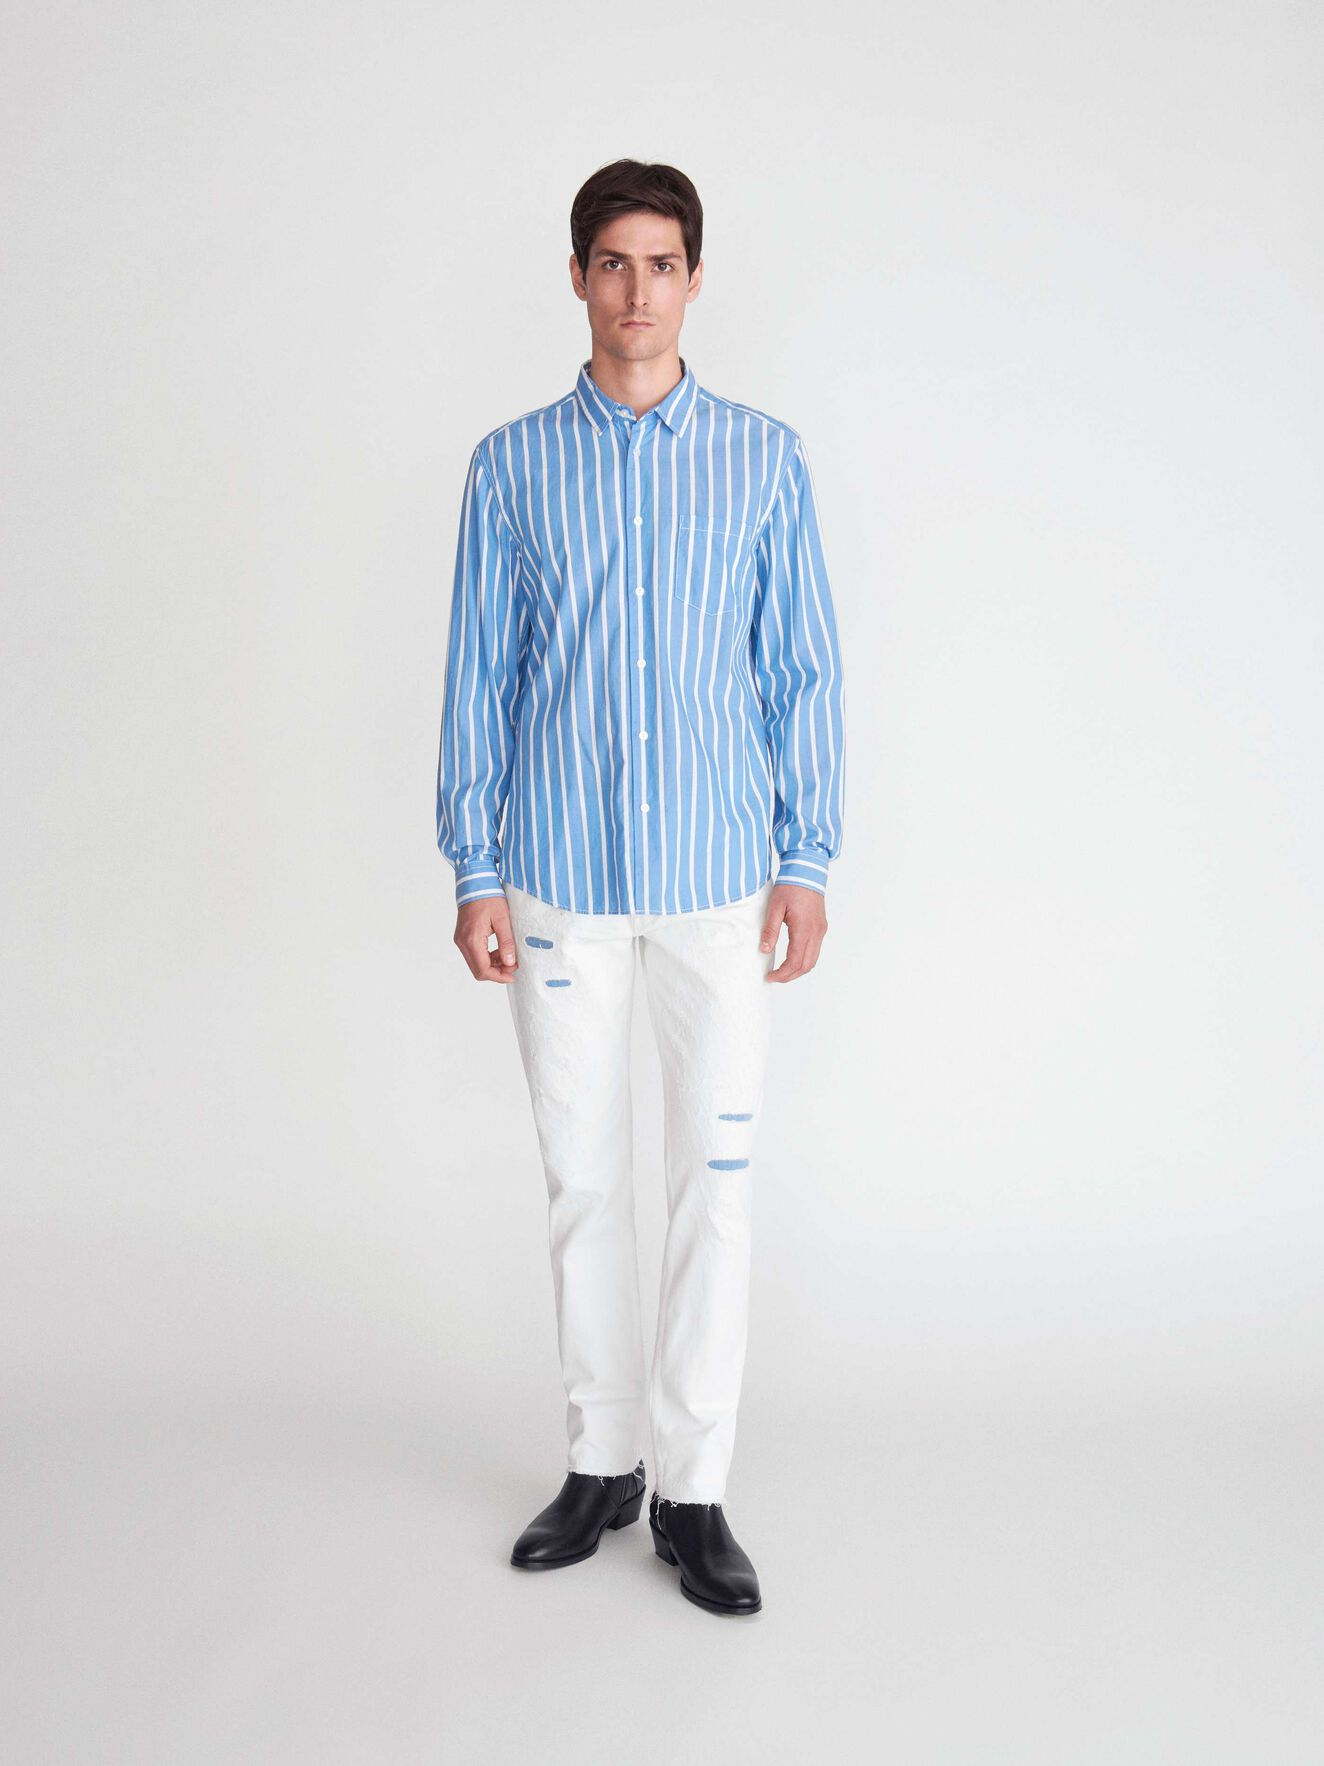 Part Str Shirt in True Sailor from Tiger of Sweden